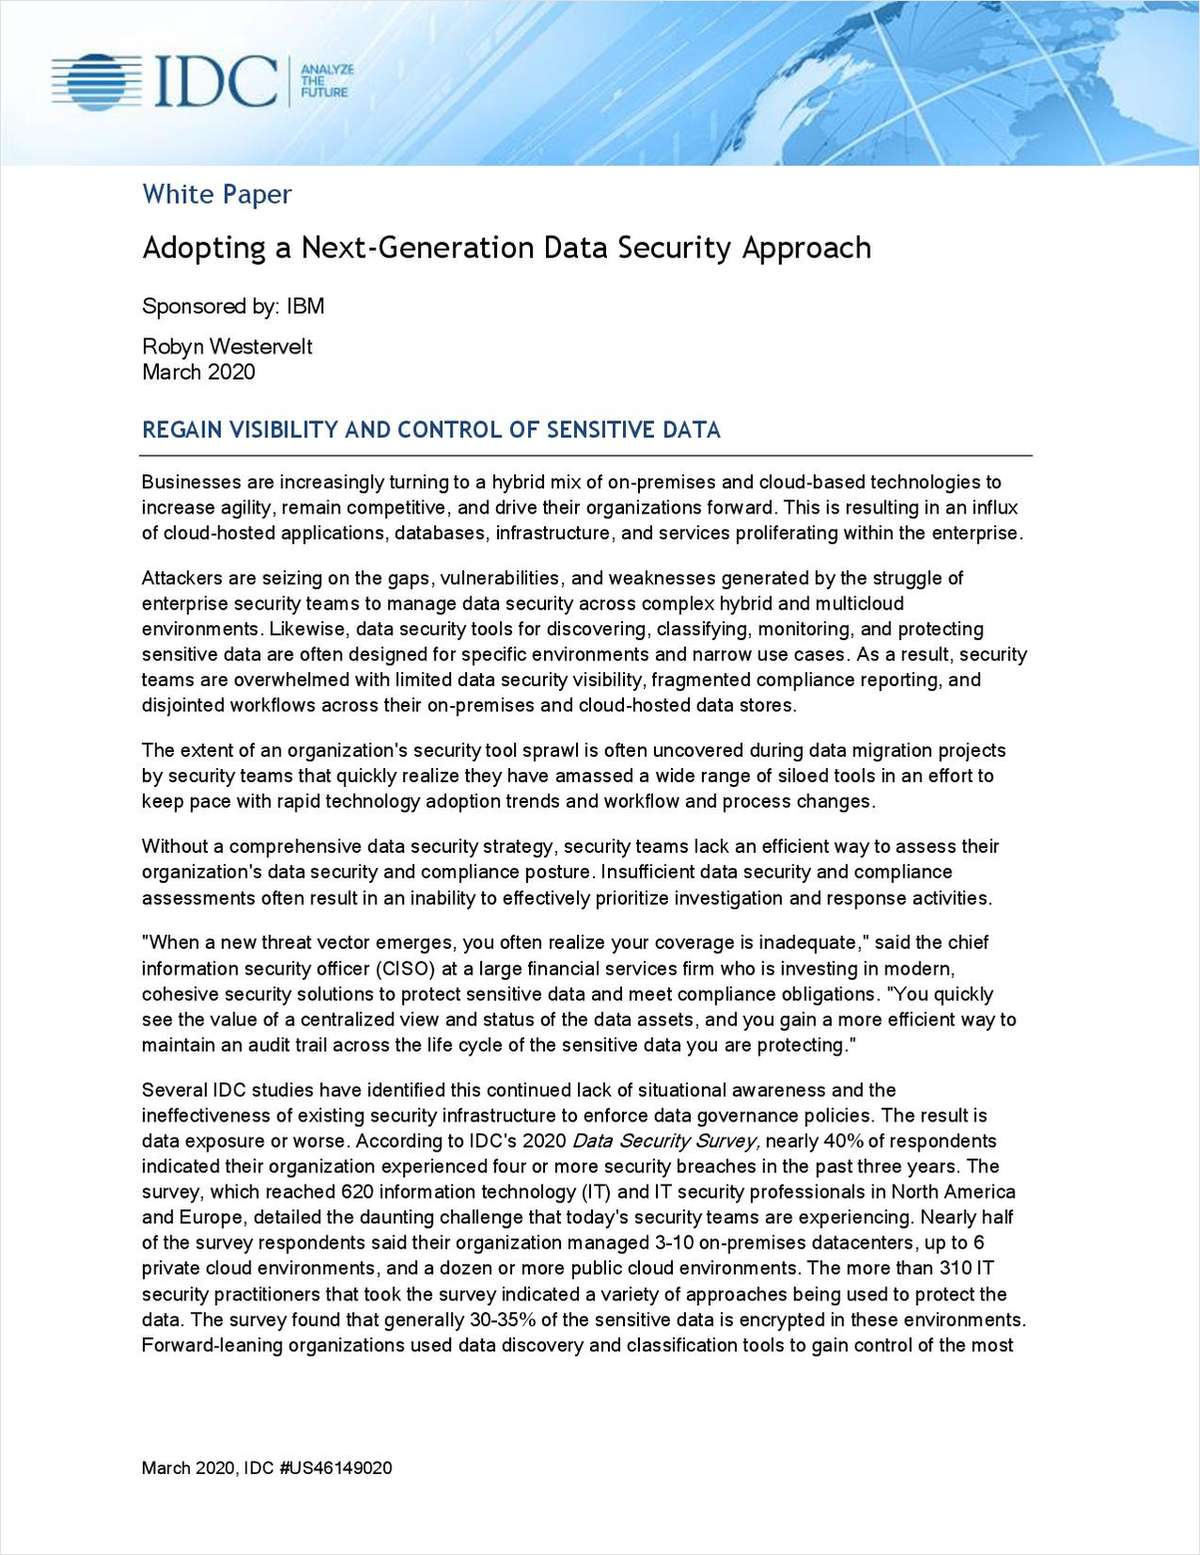 Adopting a Next-Generation Data Security Approach